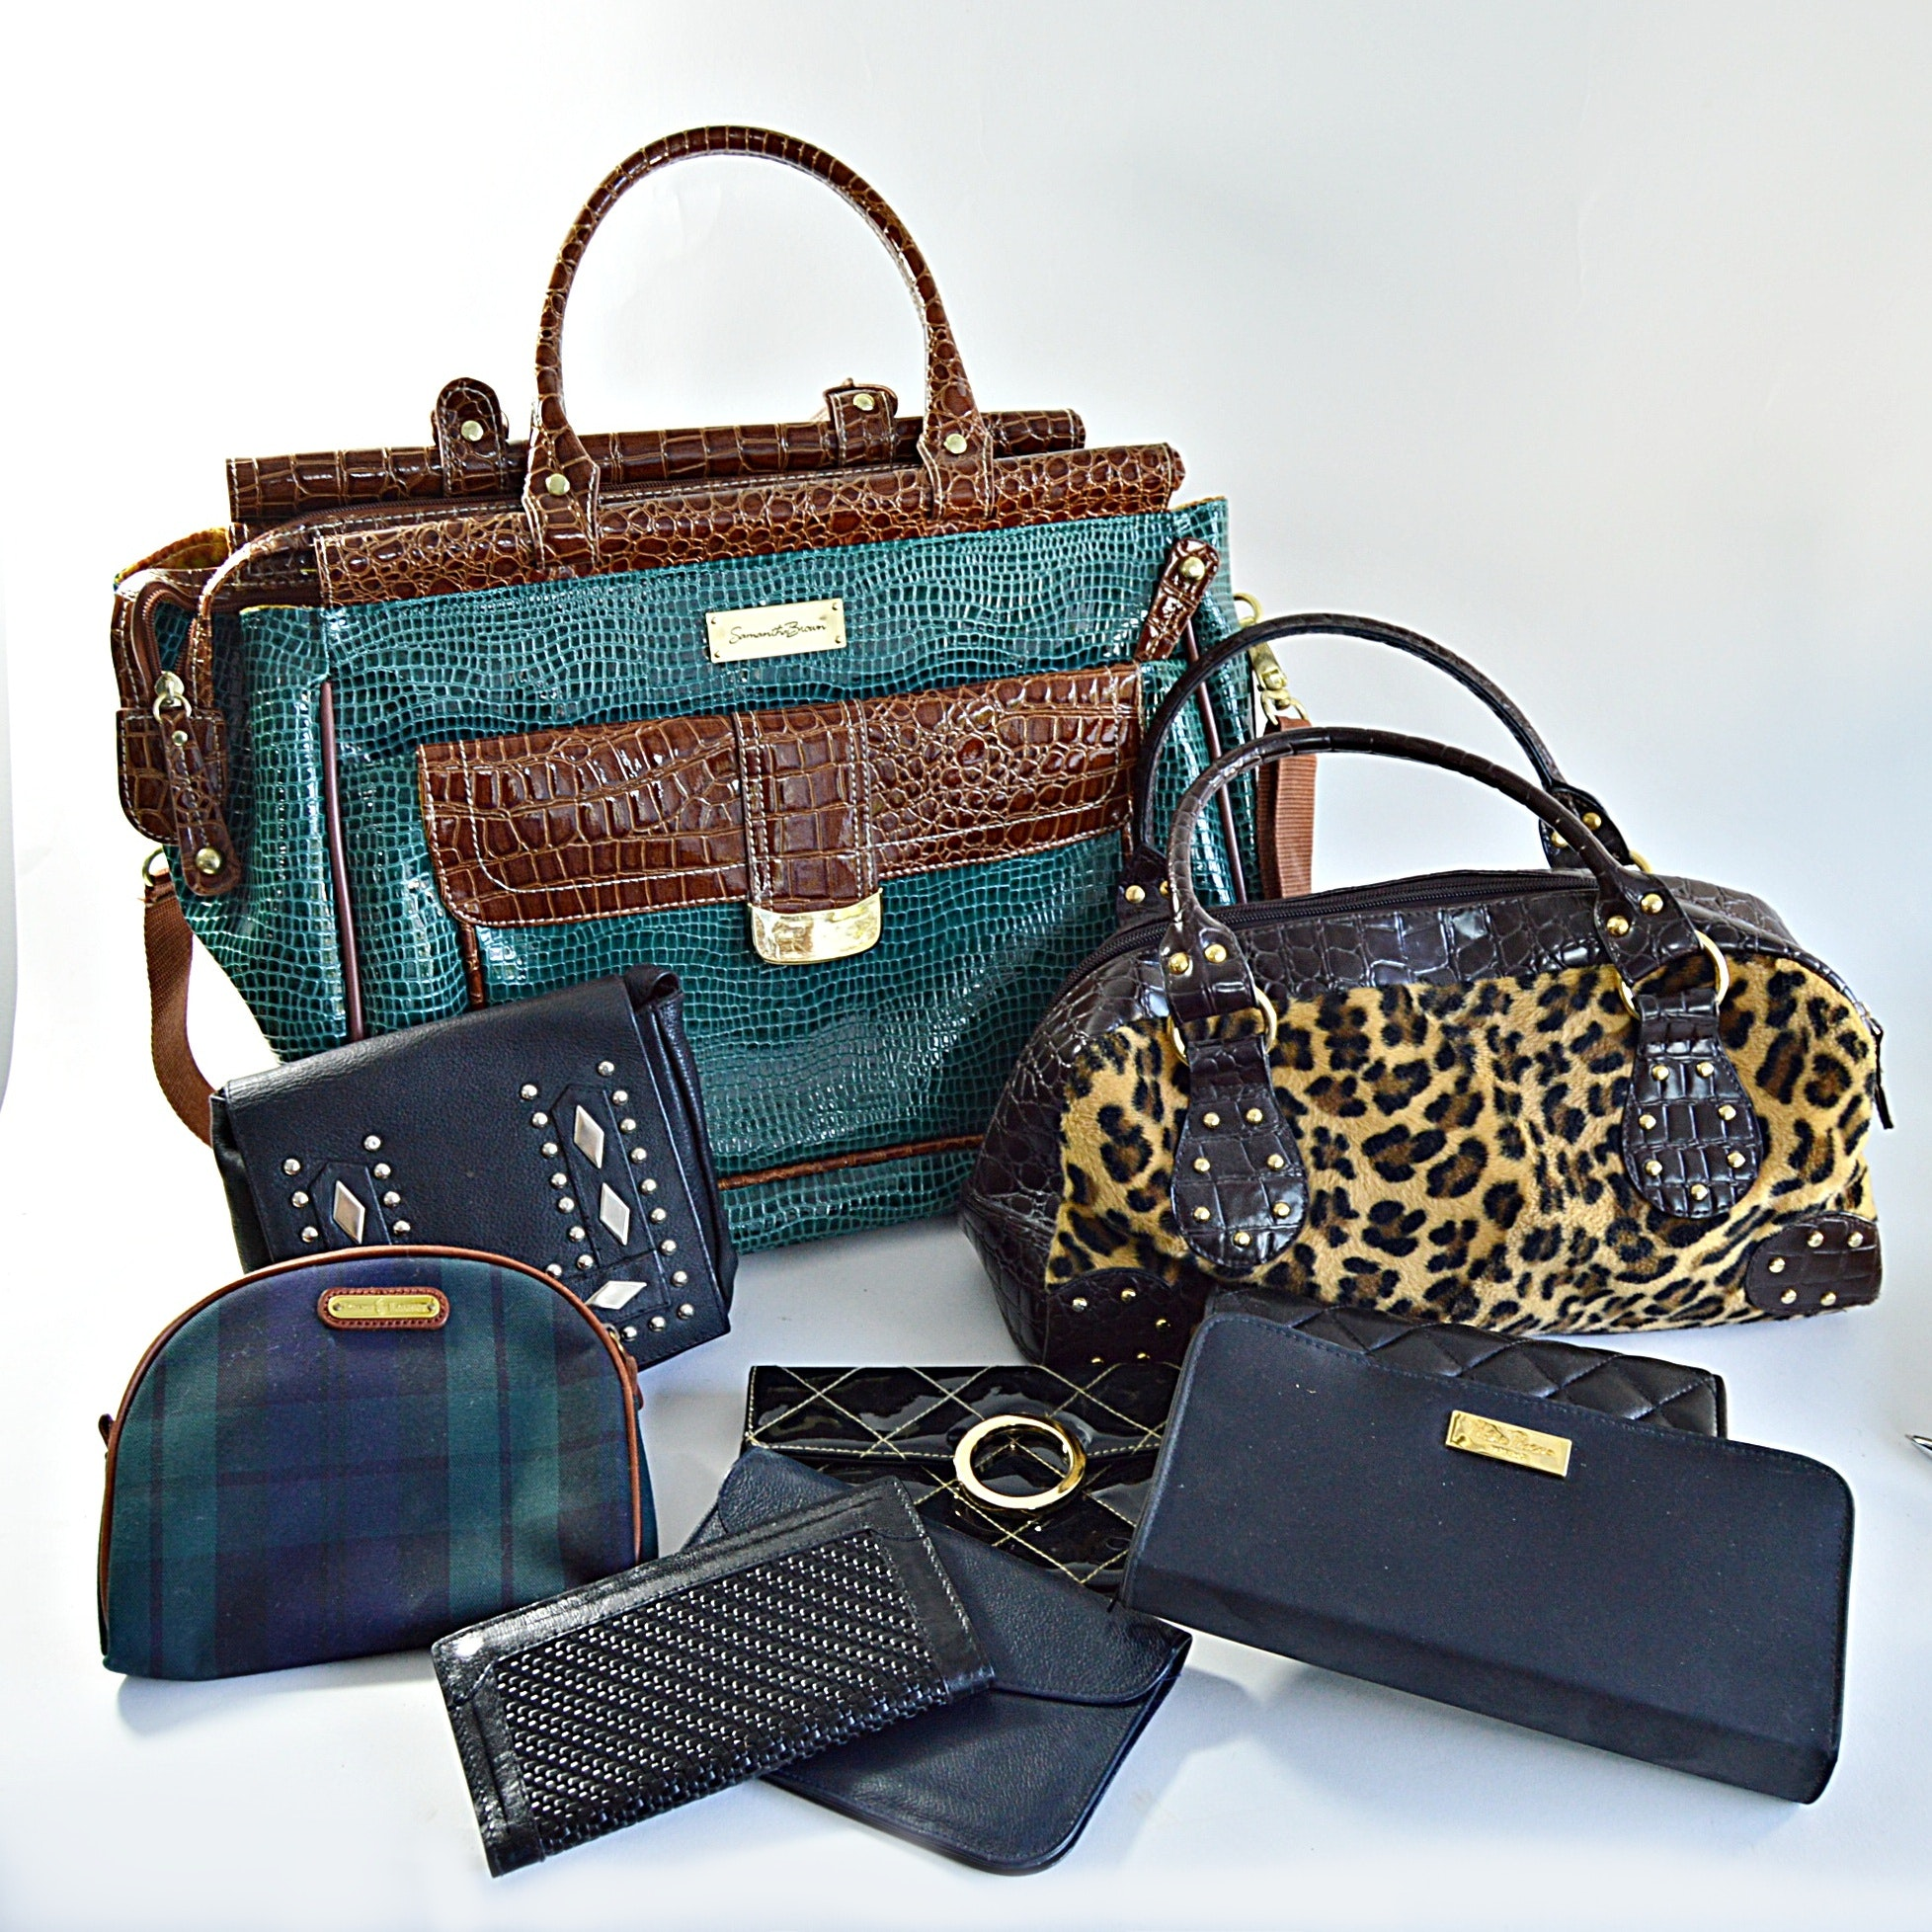 Tote Bag, Purses and Wallets Including Ralph Lauren and Paloma Picasso